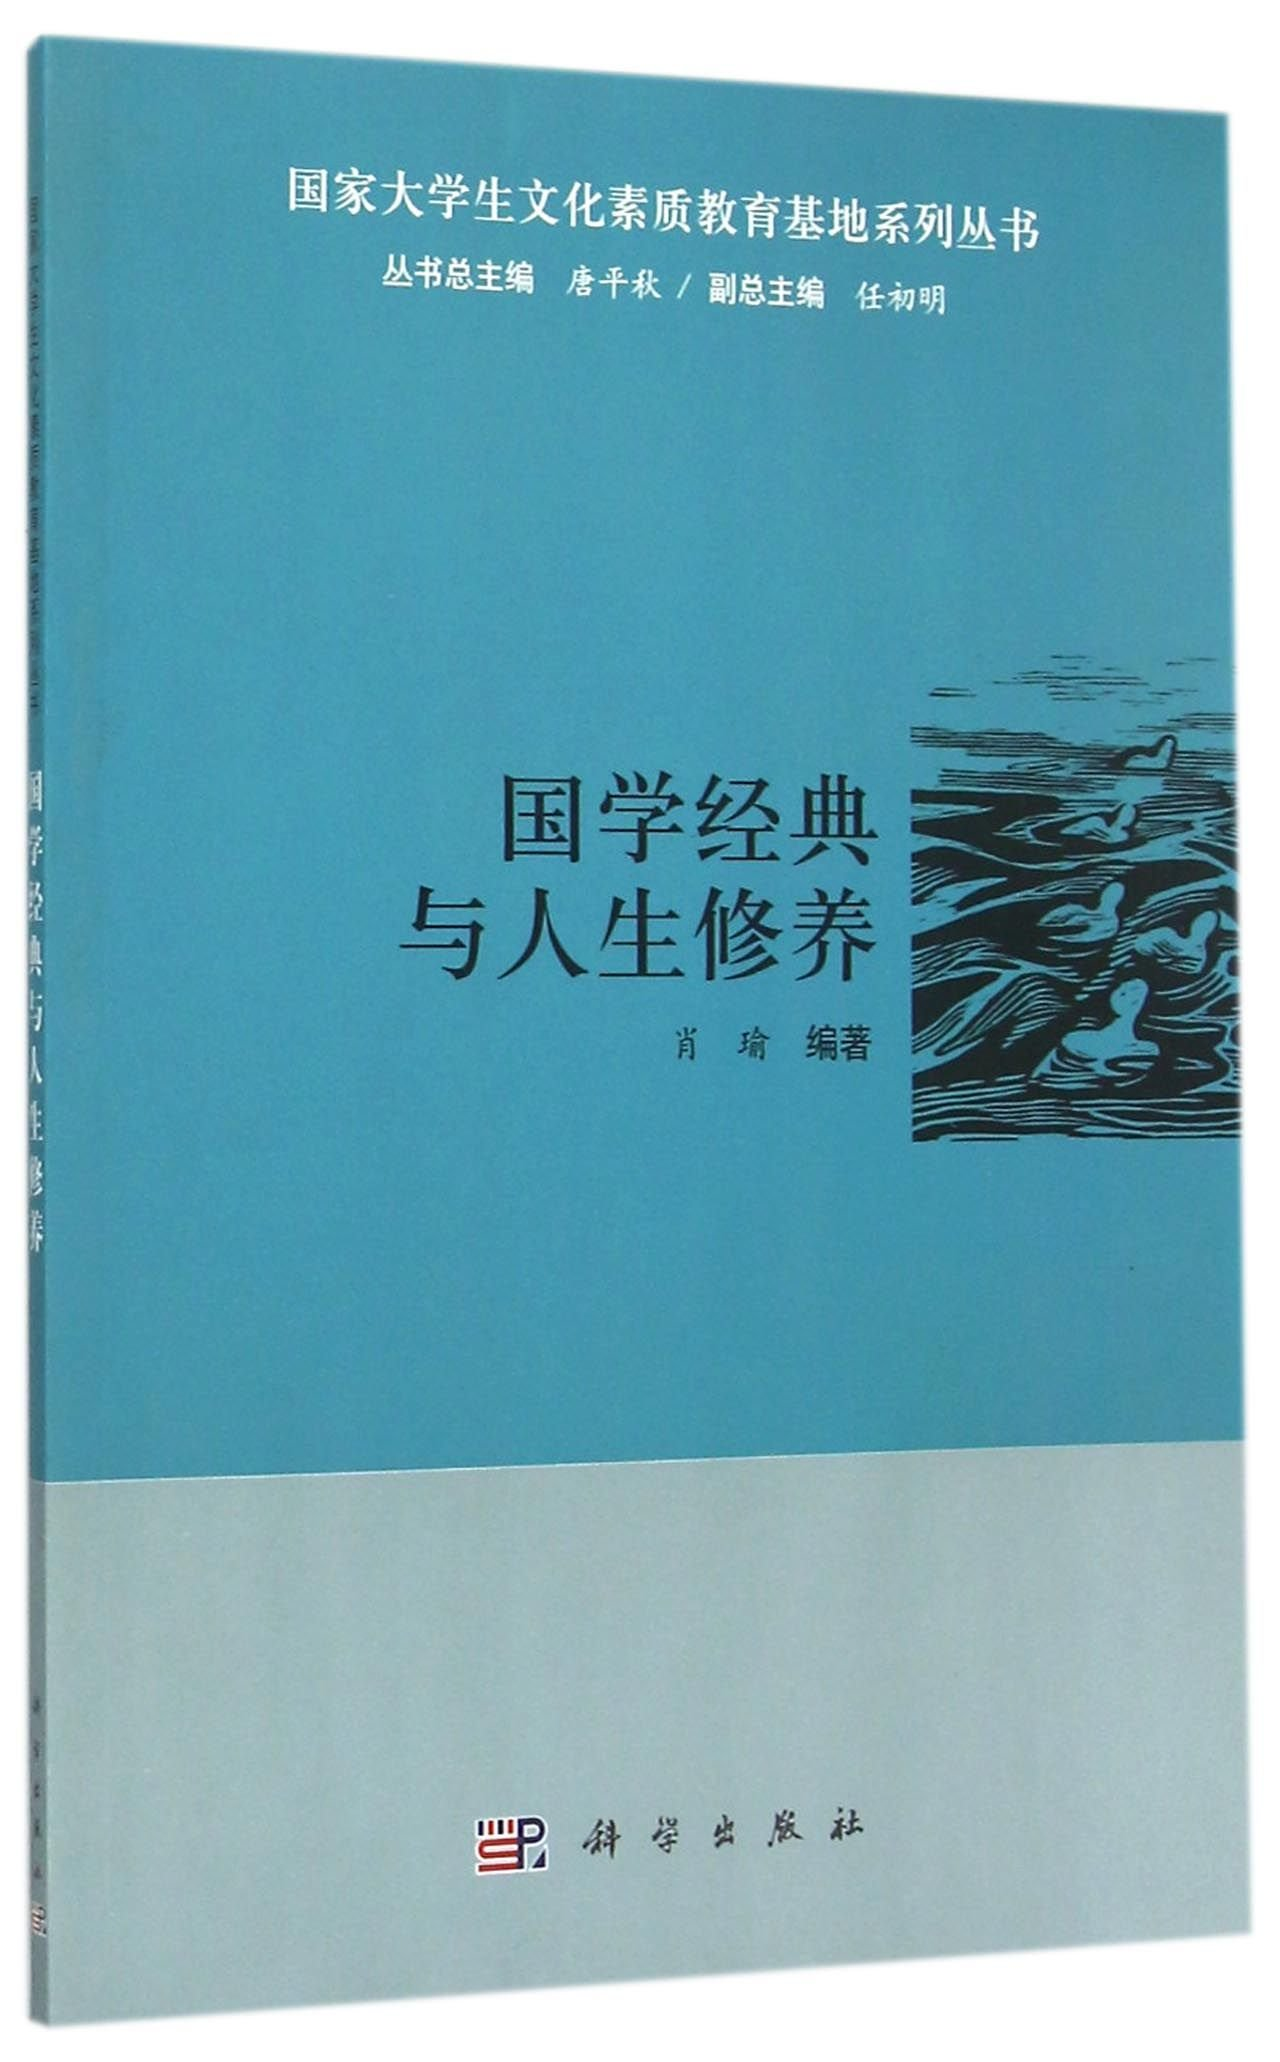 Read Online Classics of Traditional Chinese Culture and Self-cultivation of Life (Chinese Edition) PDF Text fb2 book